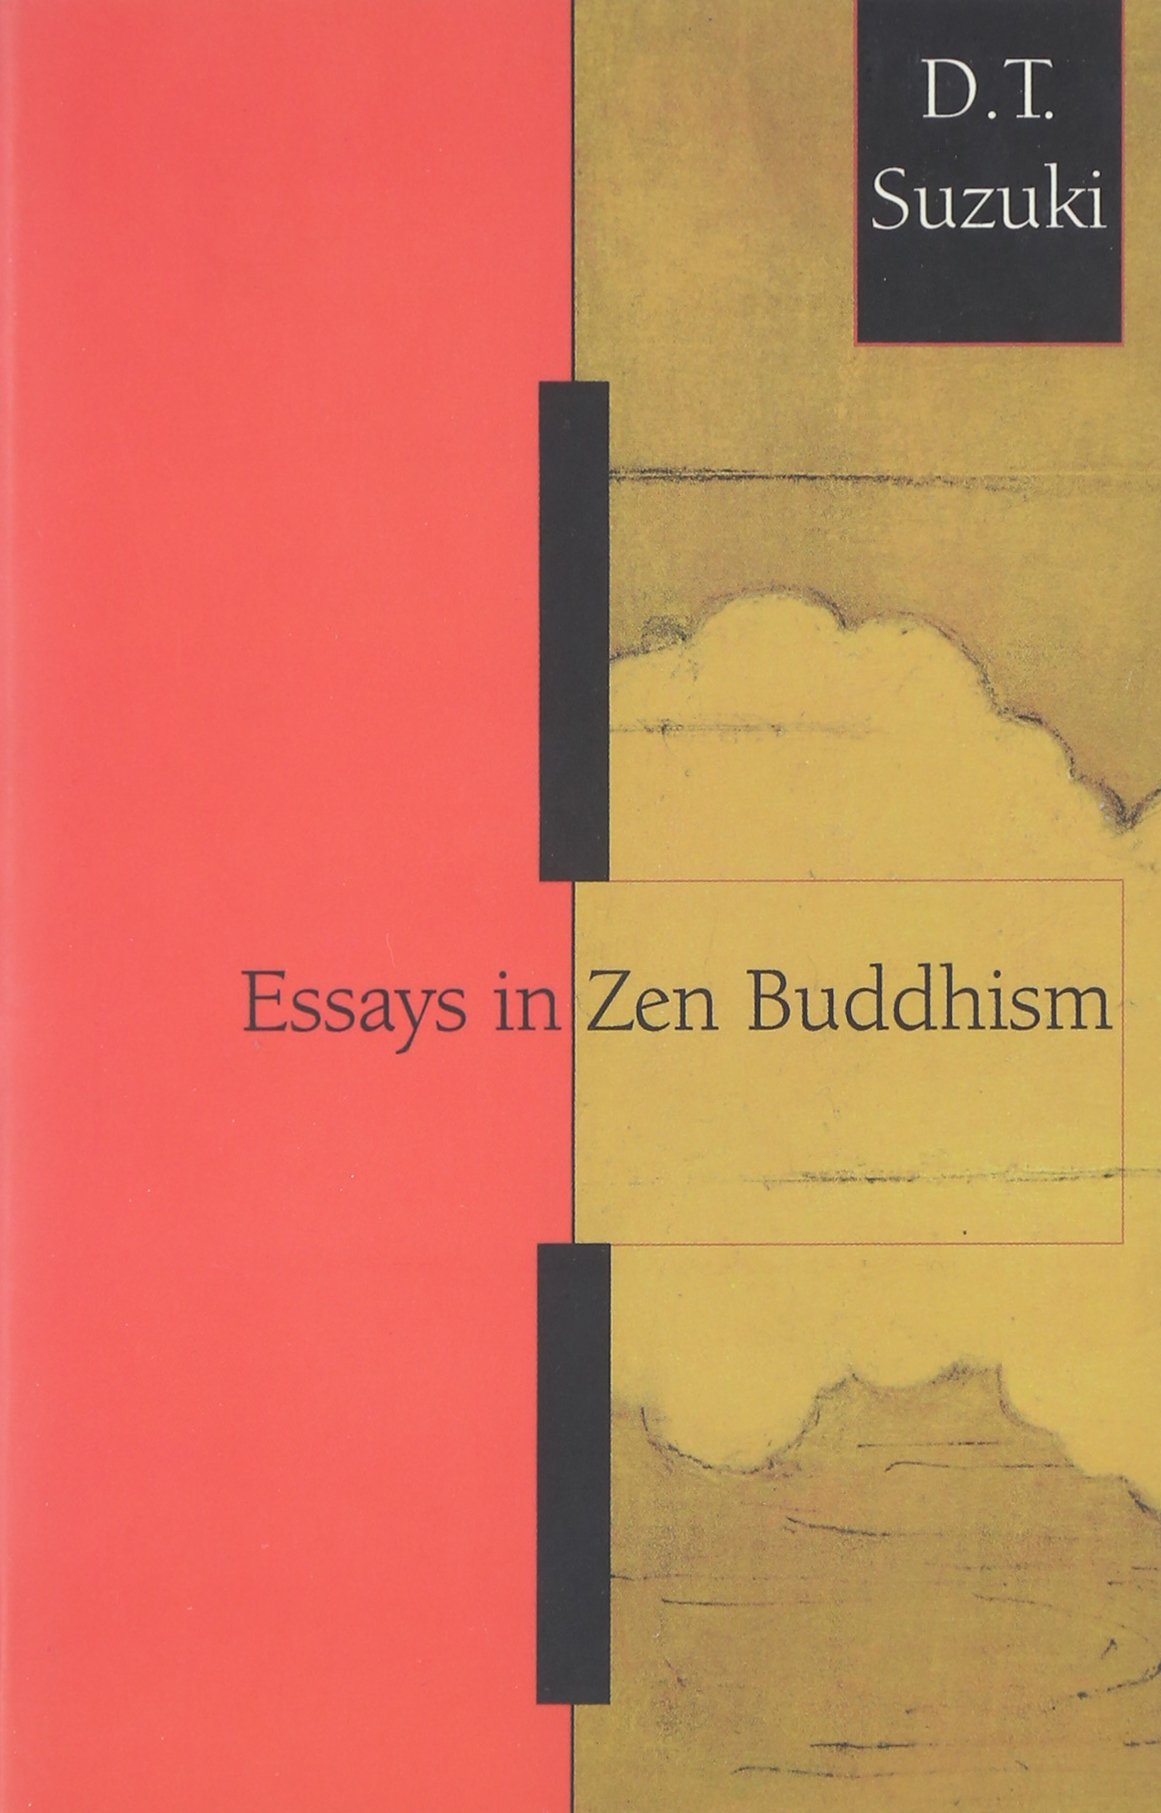 com essays in zen buddhism first series 9780802151186  com essays in zen buddhism first series 9780802151186 d t suzuki christmas humphreys books